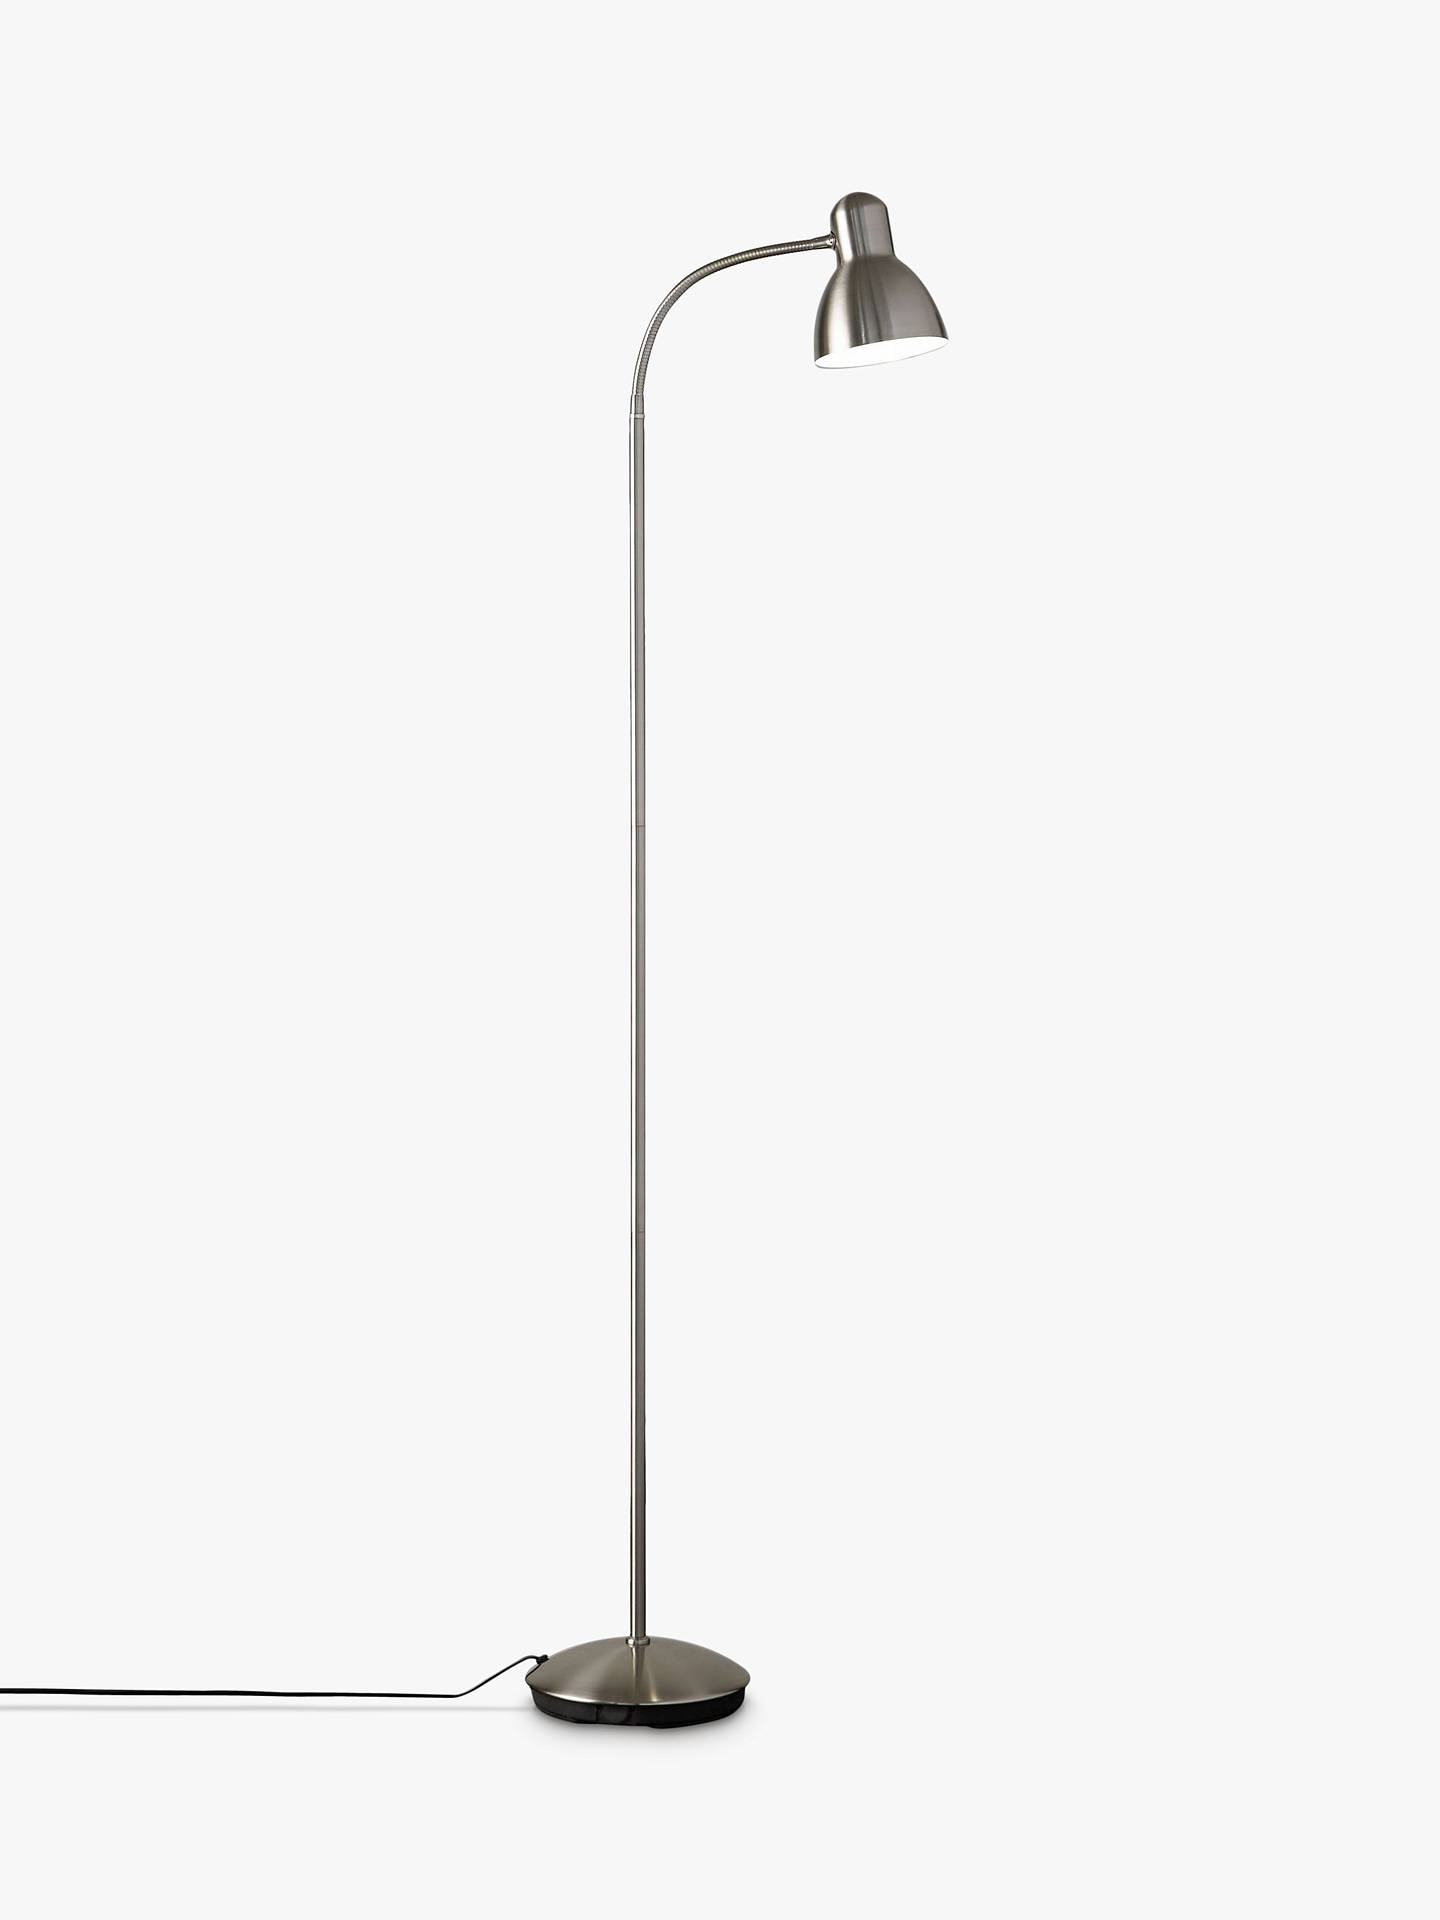 BuyJohn Lewis & Partners Mykki LED Floor Lamp, Satin Nickel Online at johnlewis.com